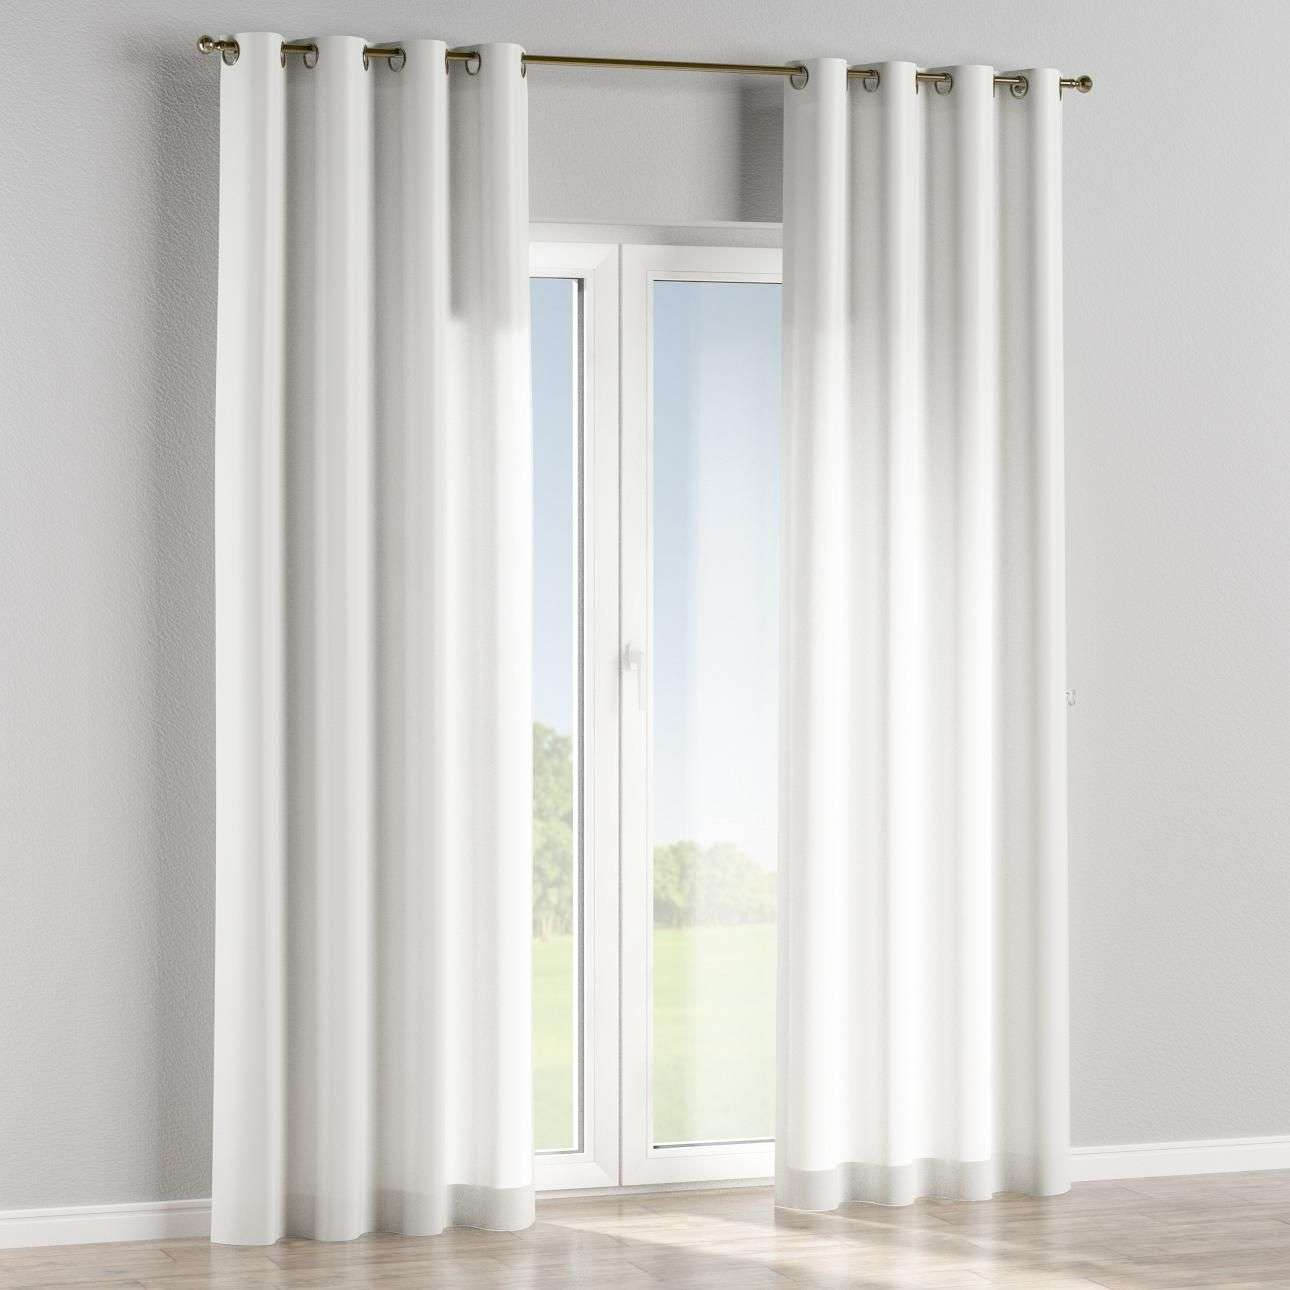 Eyelet curtains in collection Cardiff, fabric: 136-31